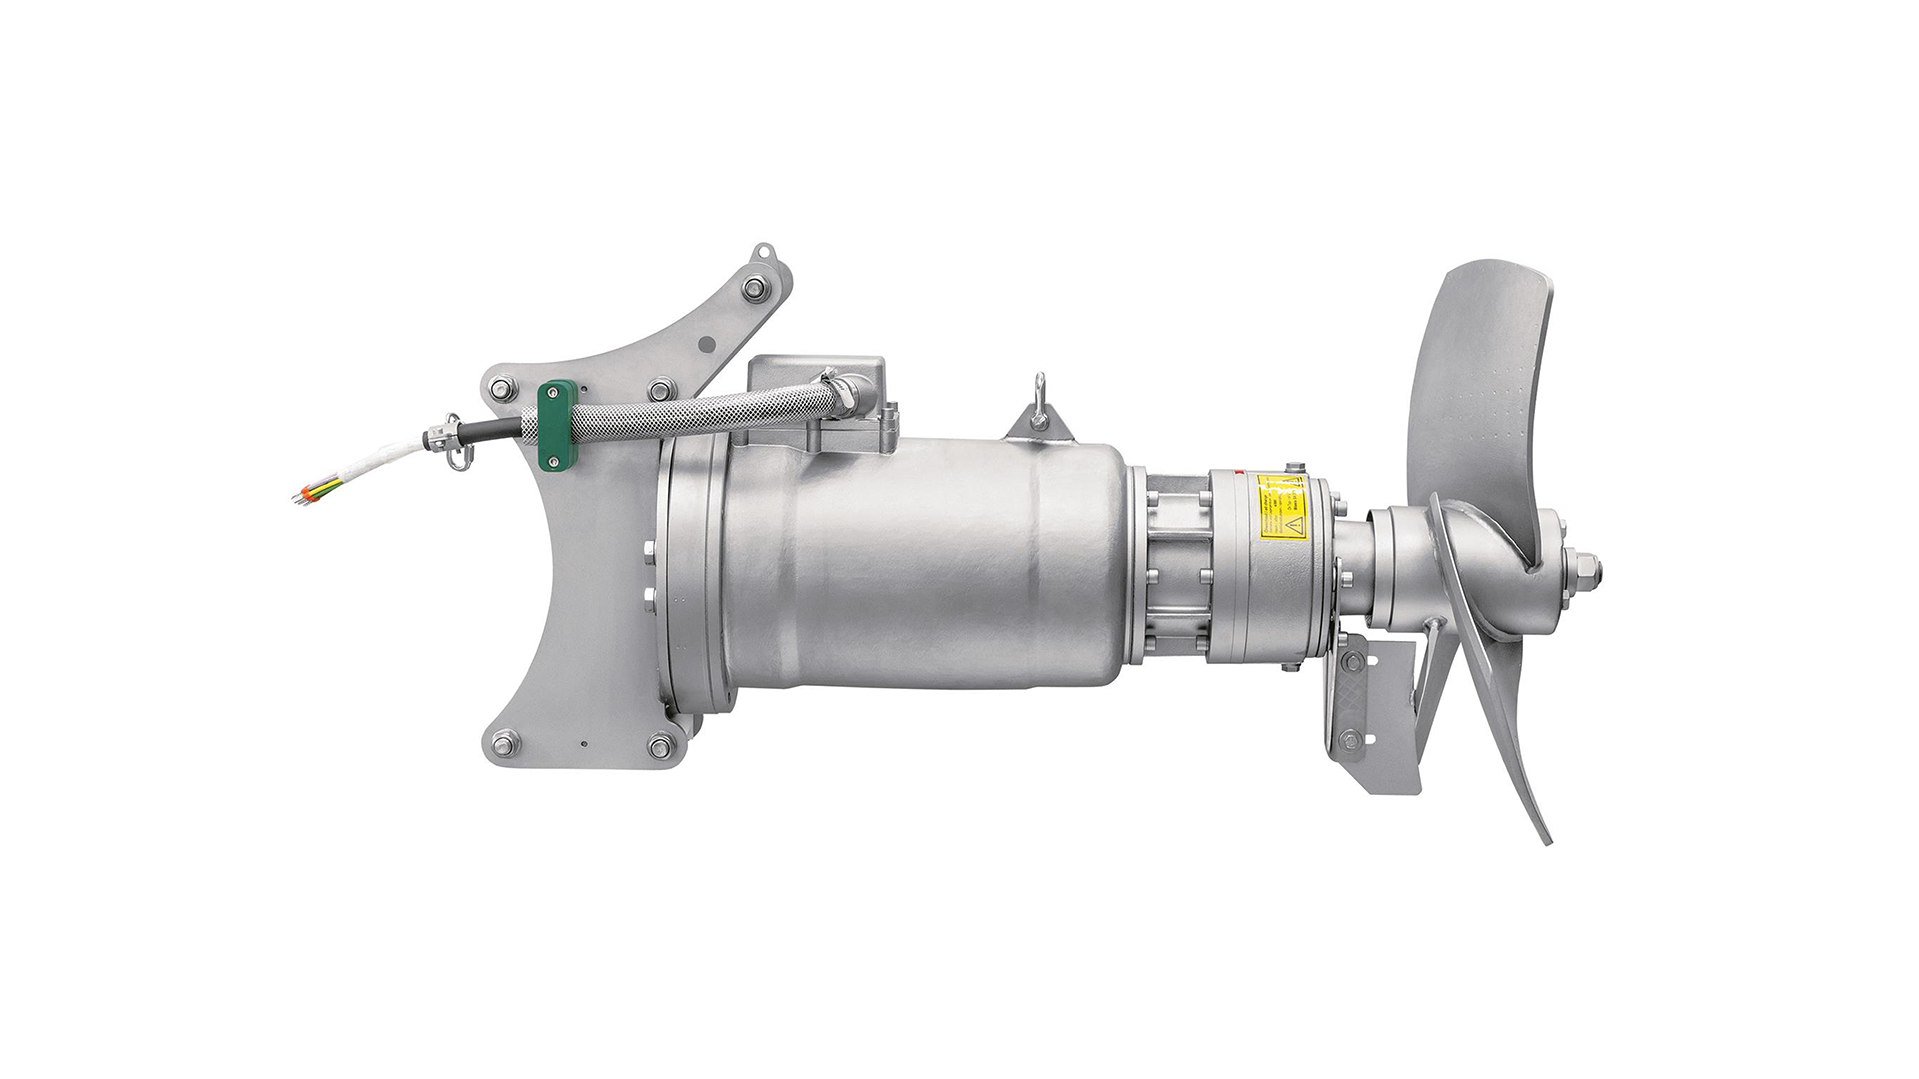 Gallery image 4 - OPTIMIX 2A * Submersible motor completely in stainless steel * For dry matter content up to 12% * Rated power 4.0 kW * Propeller Ø 700 | 620 mm * Propeller speed 180 | 250 rpm * For substrates with low pH-values and operations in extreme aggressive media